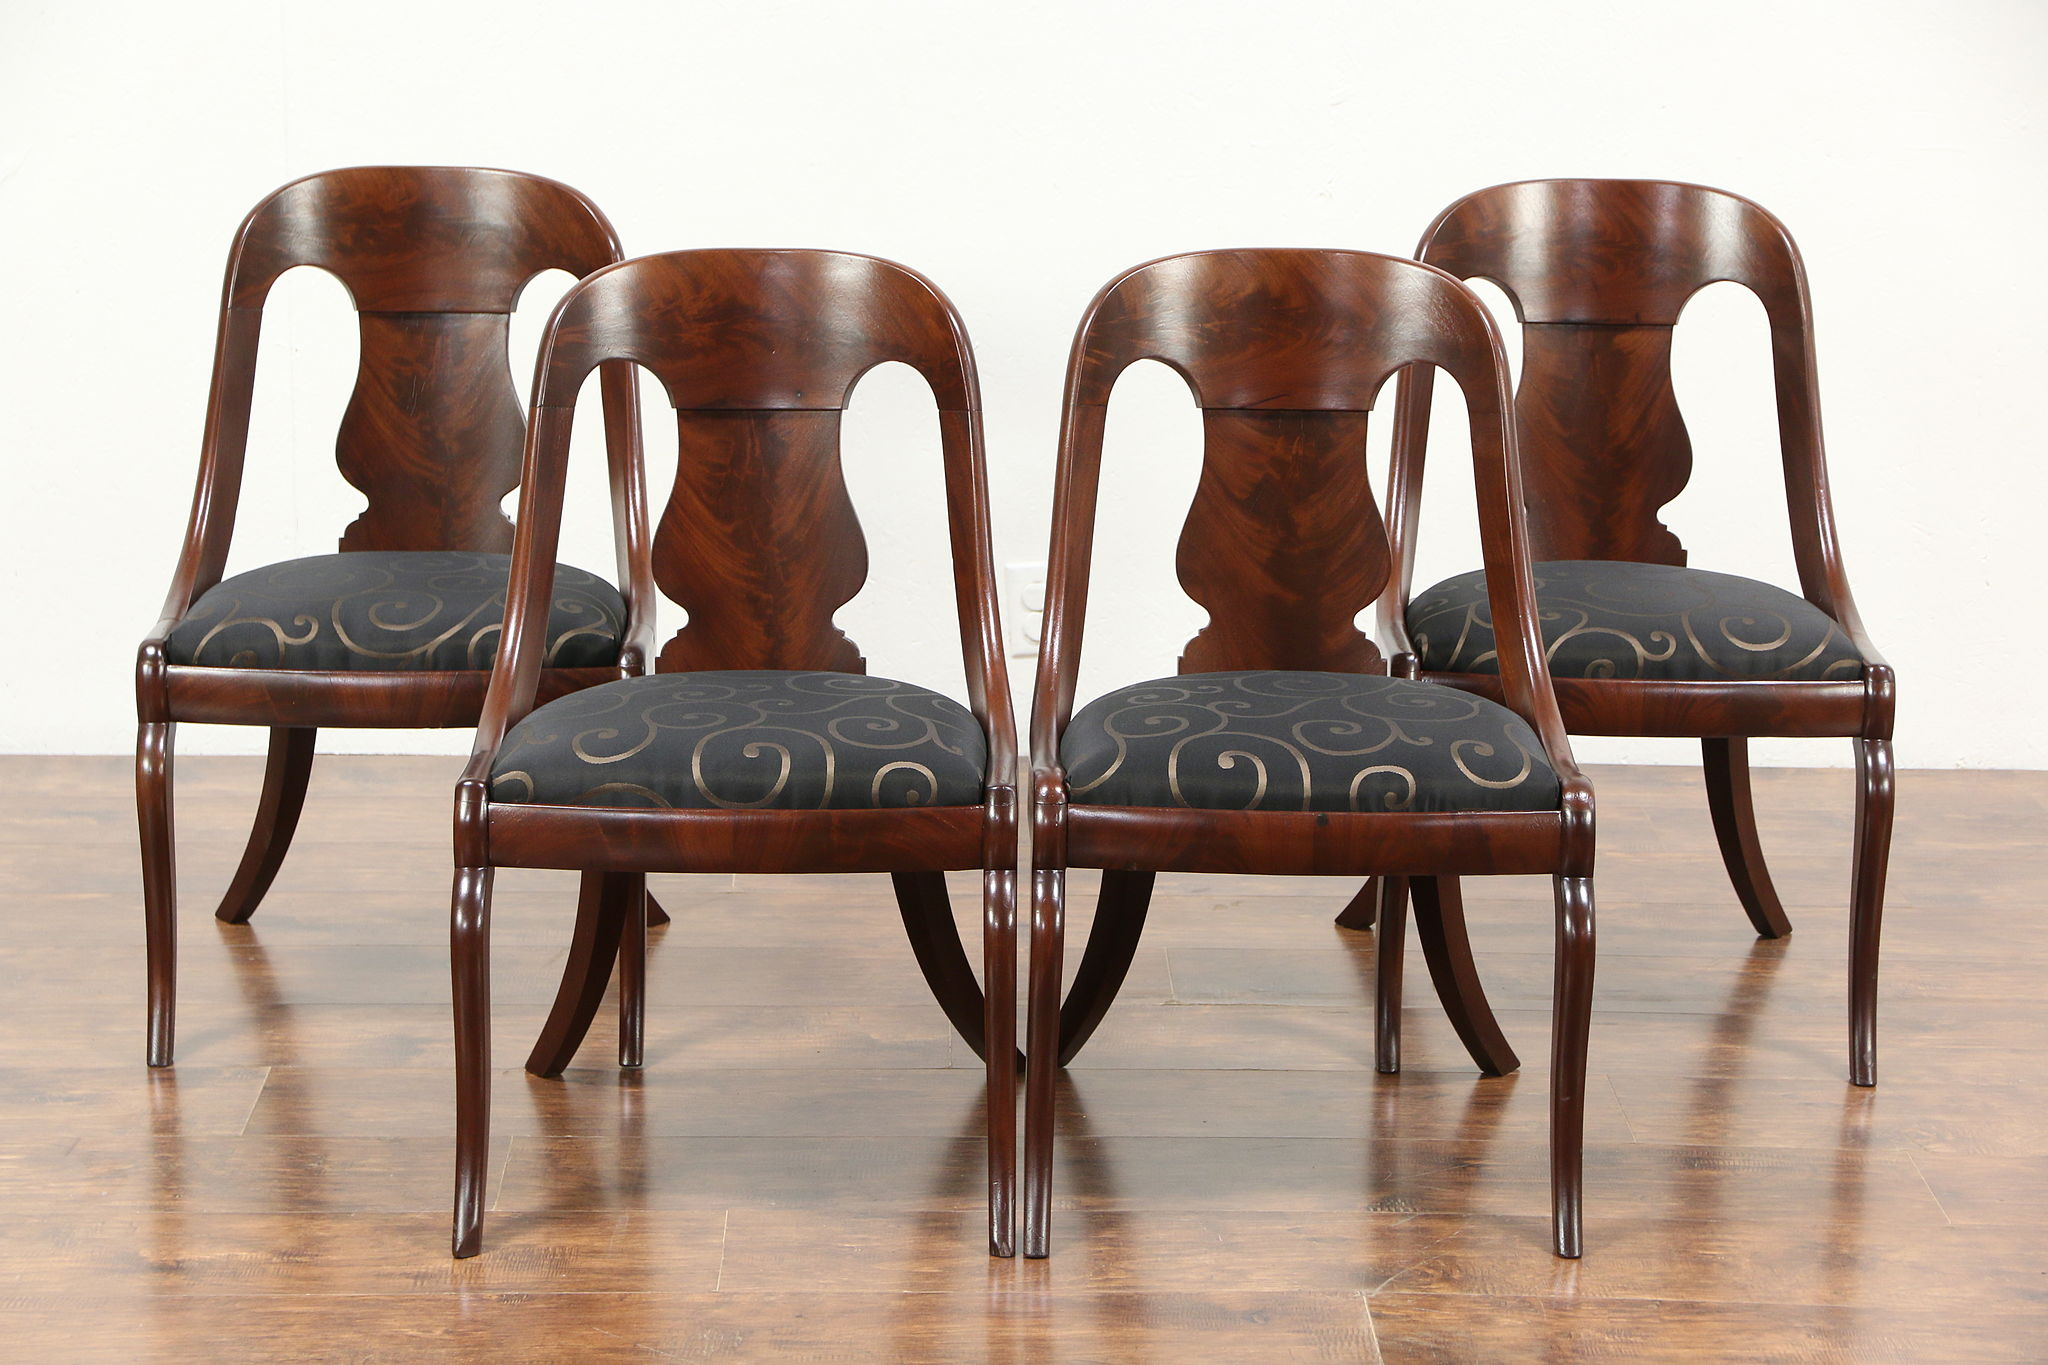 Superieur Set Of 4 Empire 1825 Antique Dining Or Game Chairs, New Upholstery